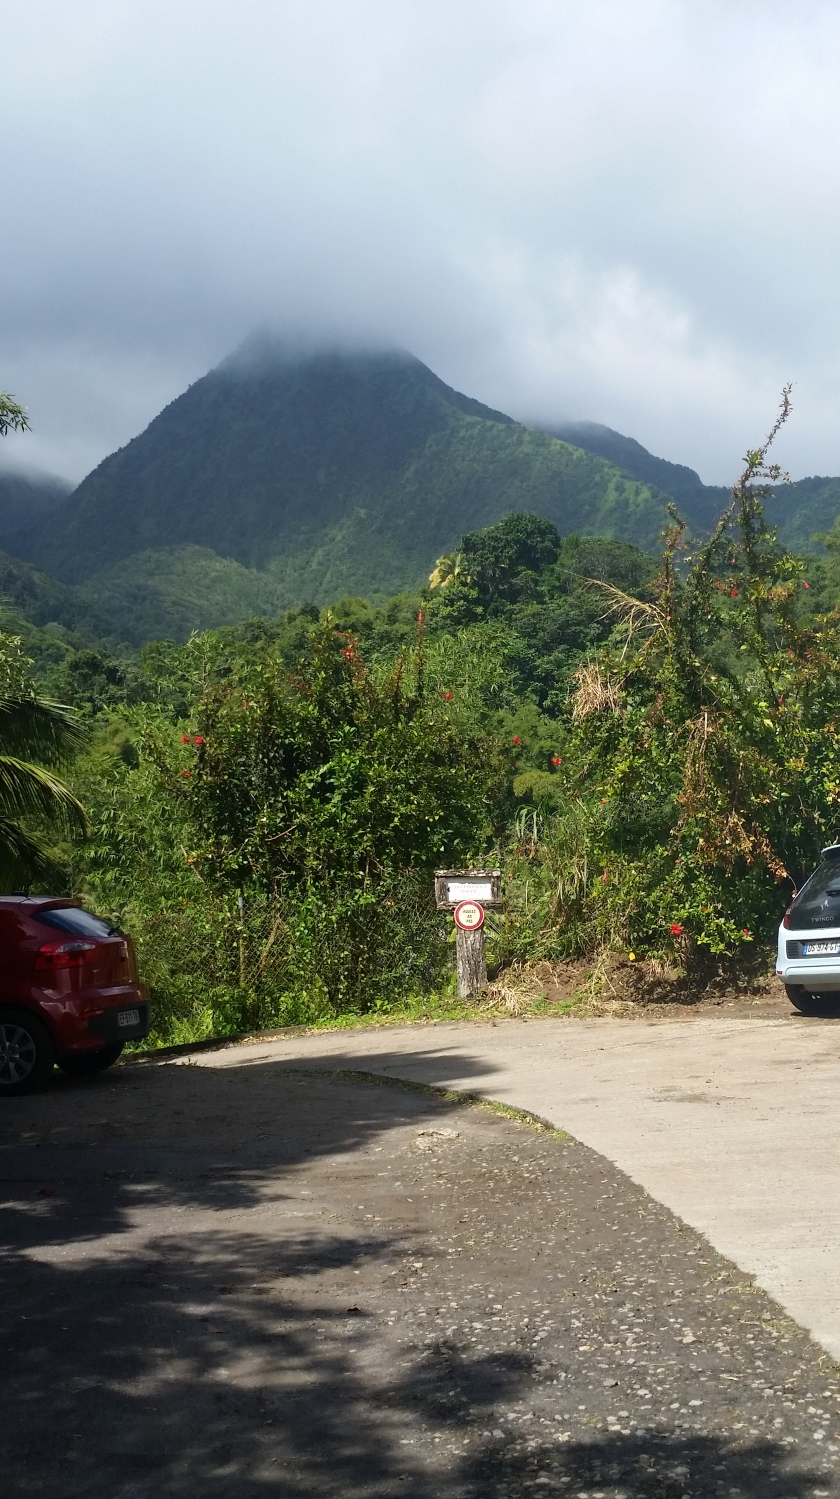 Mountain on Martinique